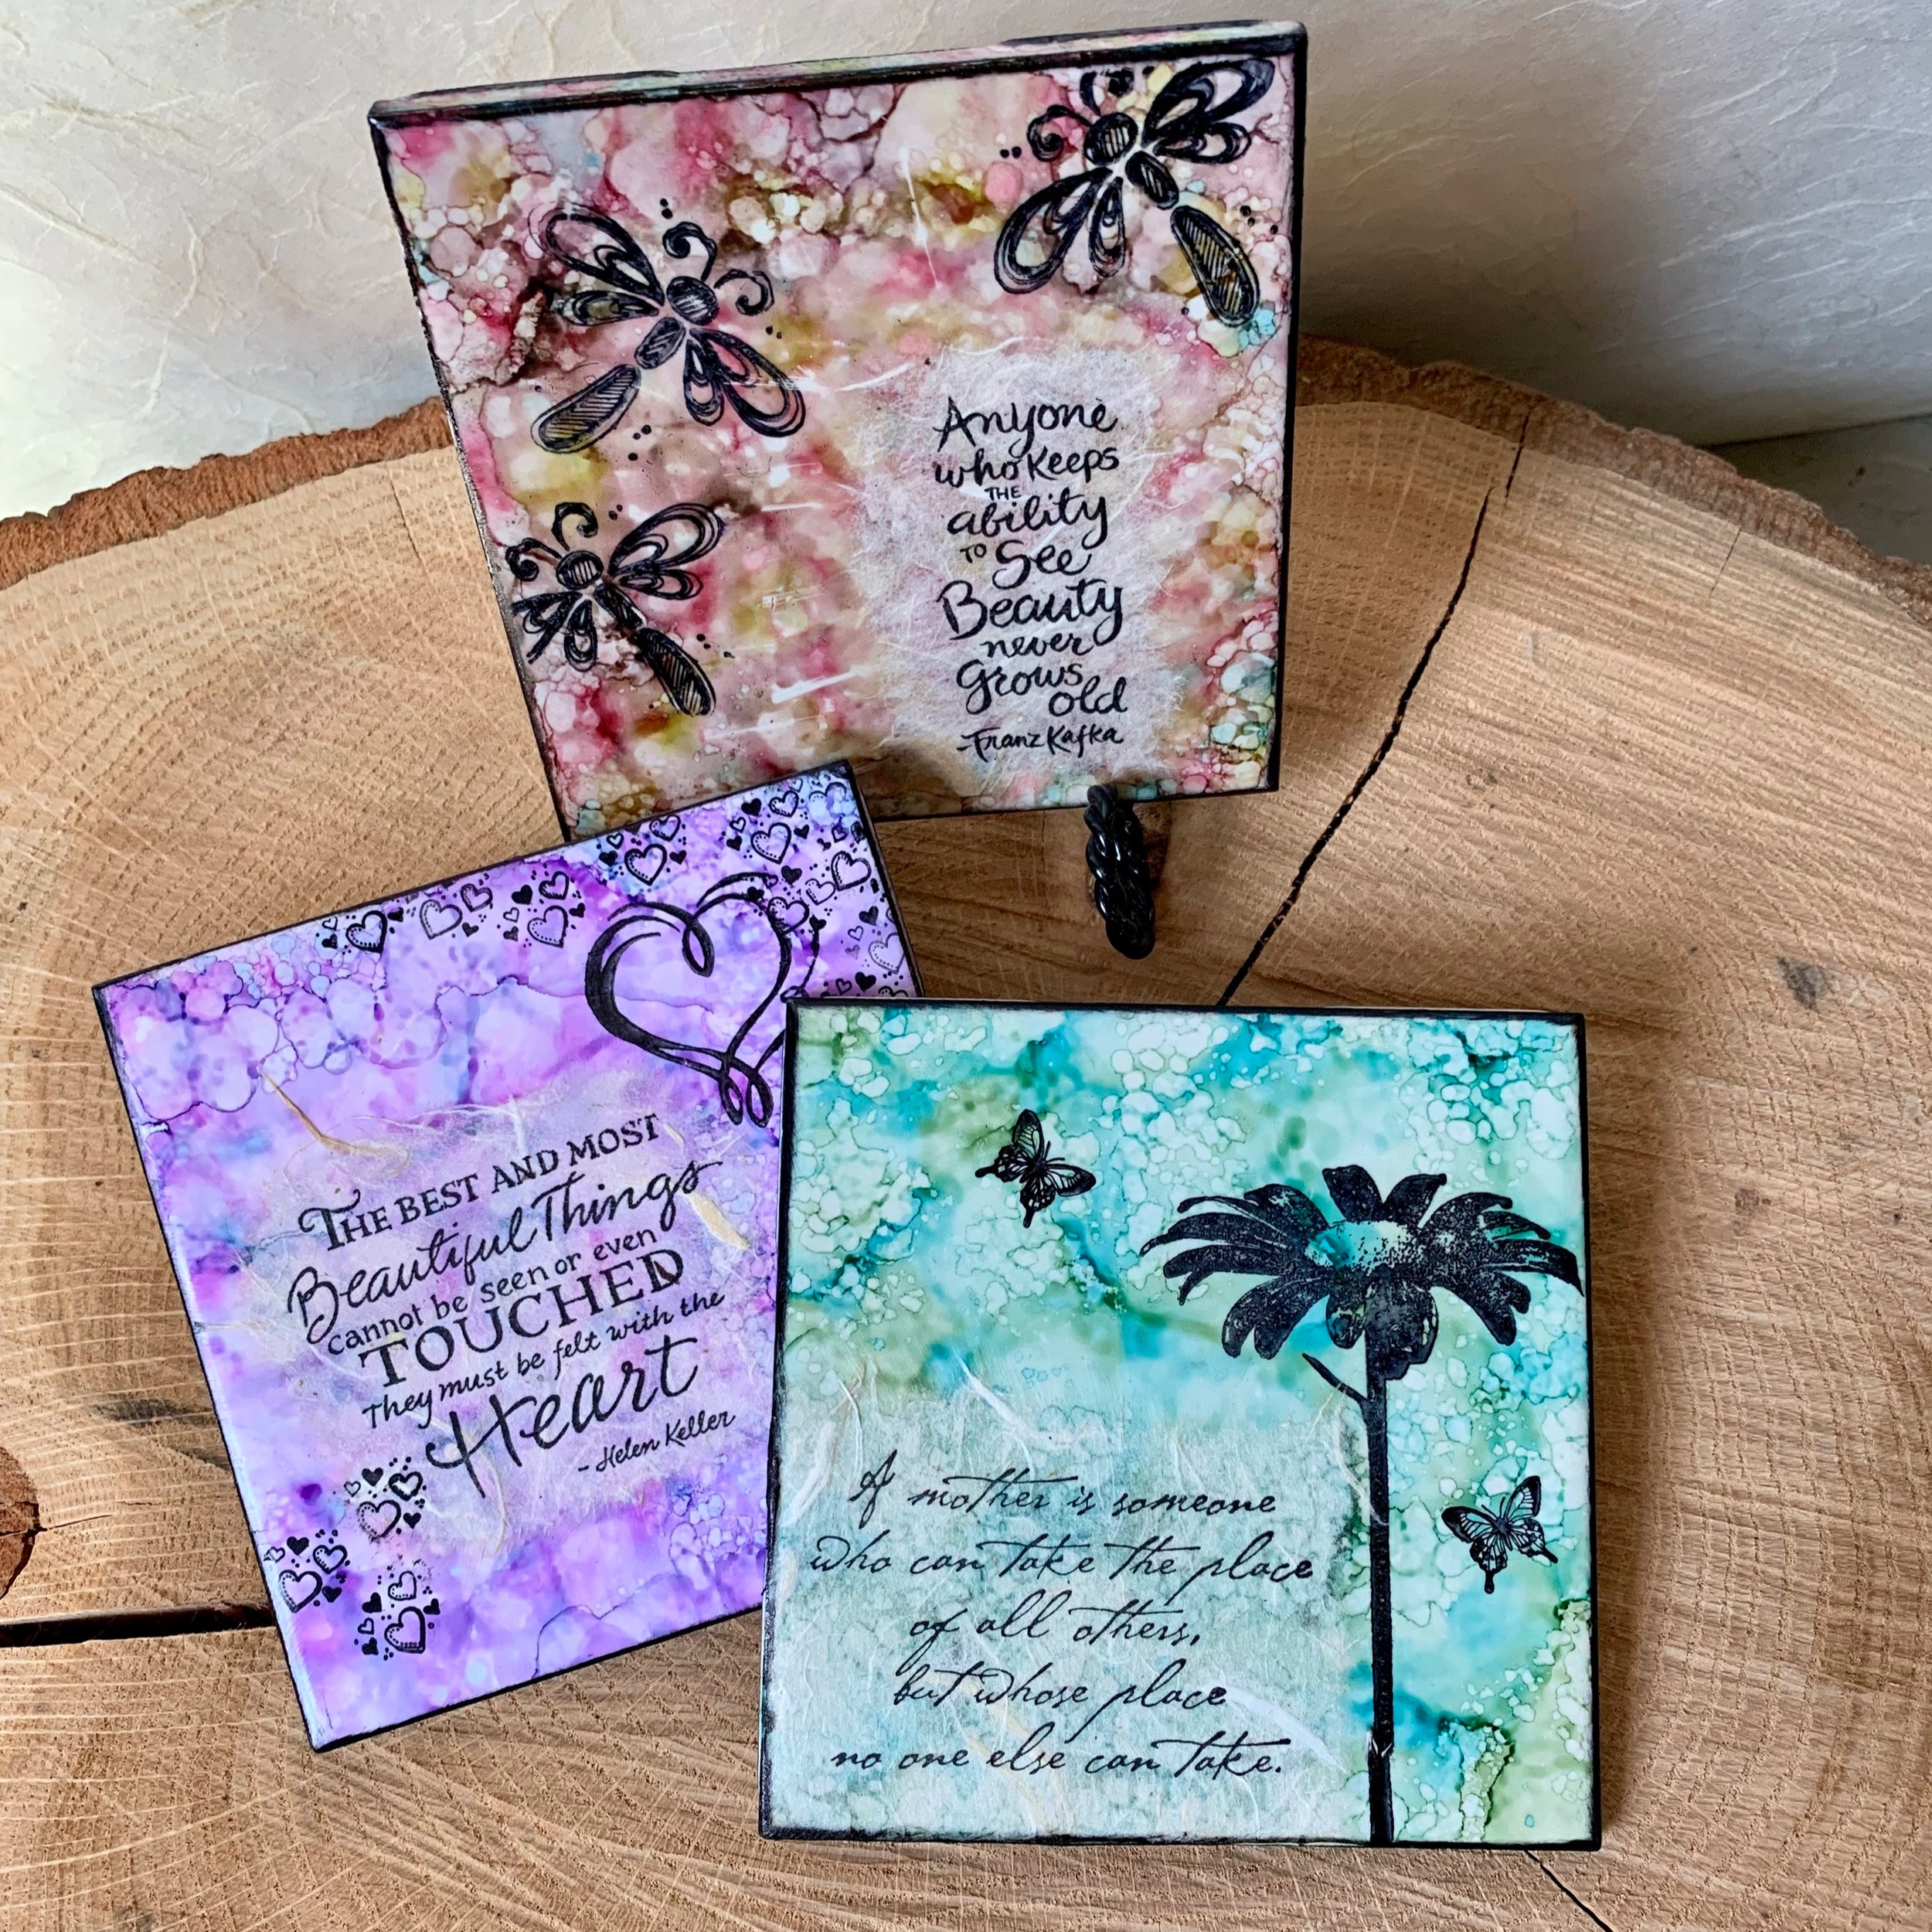 "Inspirational Tiles - Choose your Theme! - In this 2 hour workshop, play with alcohol inks in many color choices to make a colorful background, then use specialty papers, ink and rubber stamps to complete your 4""x 4"" inspirational tile. The workshop will offer several sayings and images related to your chosen theme. Ages: Adult or 10+ with AdultChoose your theme: Garden (flowers, butterflies, dragonflies), Angels, Seasonal, Wildlife, Lighthouses, Nature Scenes, Celestial.All supplies provided, including hanger or easel to display your tile.Instructor: Lisa JarrellWorkshop Fee: $20 or make 2 tiles for $35, minimum 4, maximum 8"